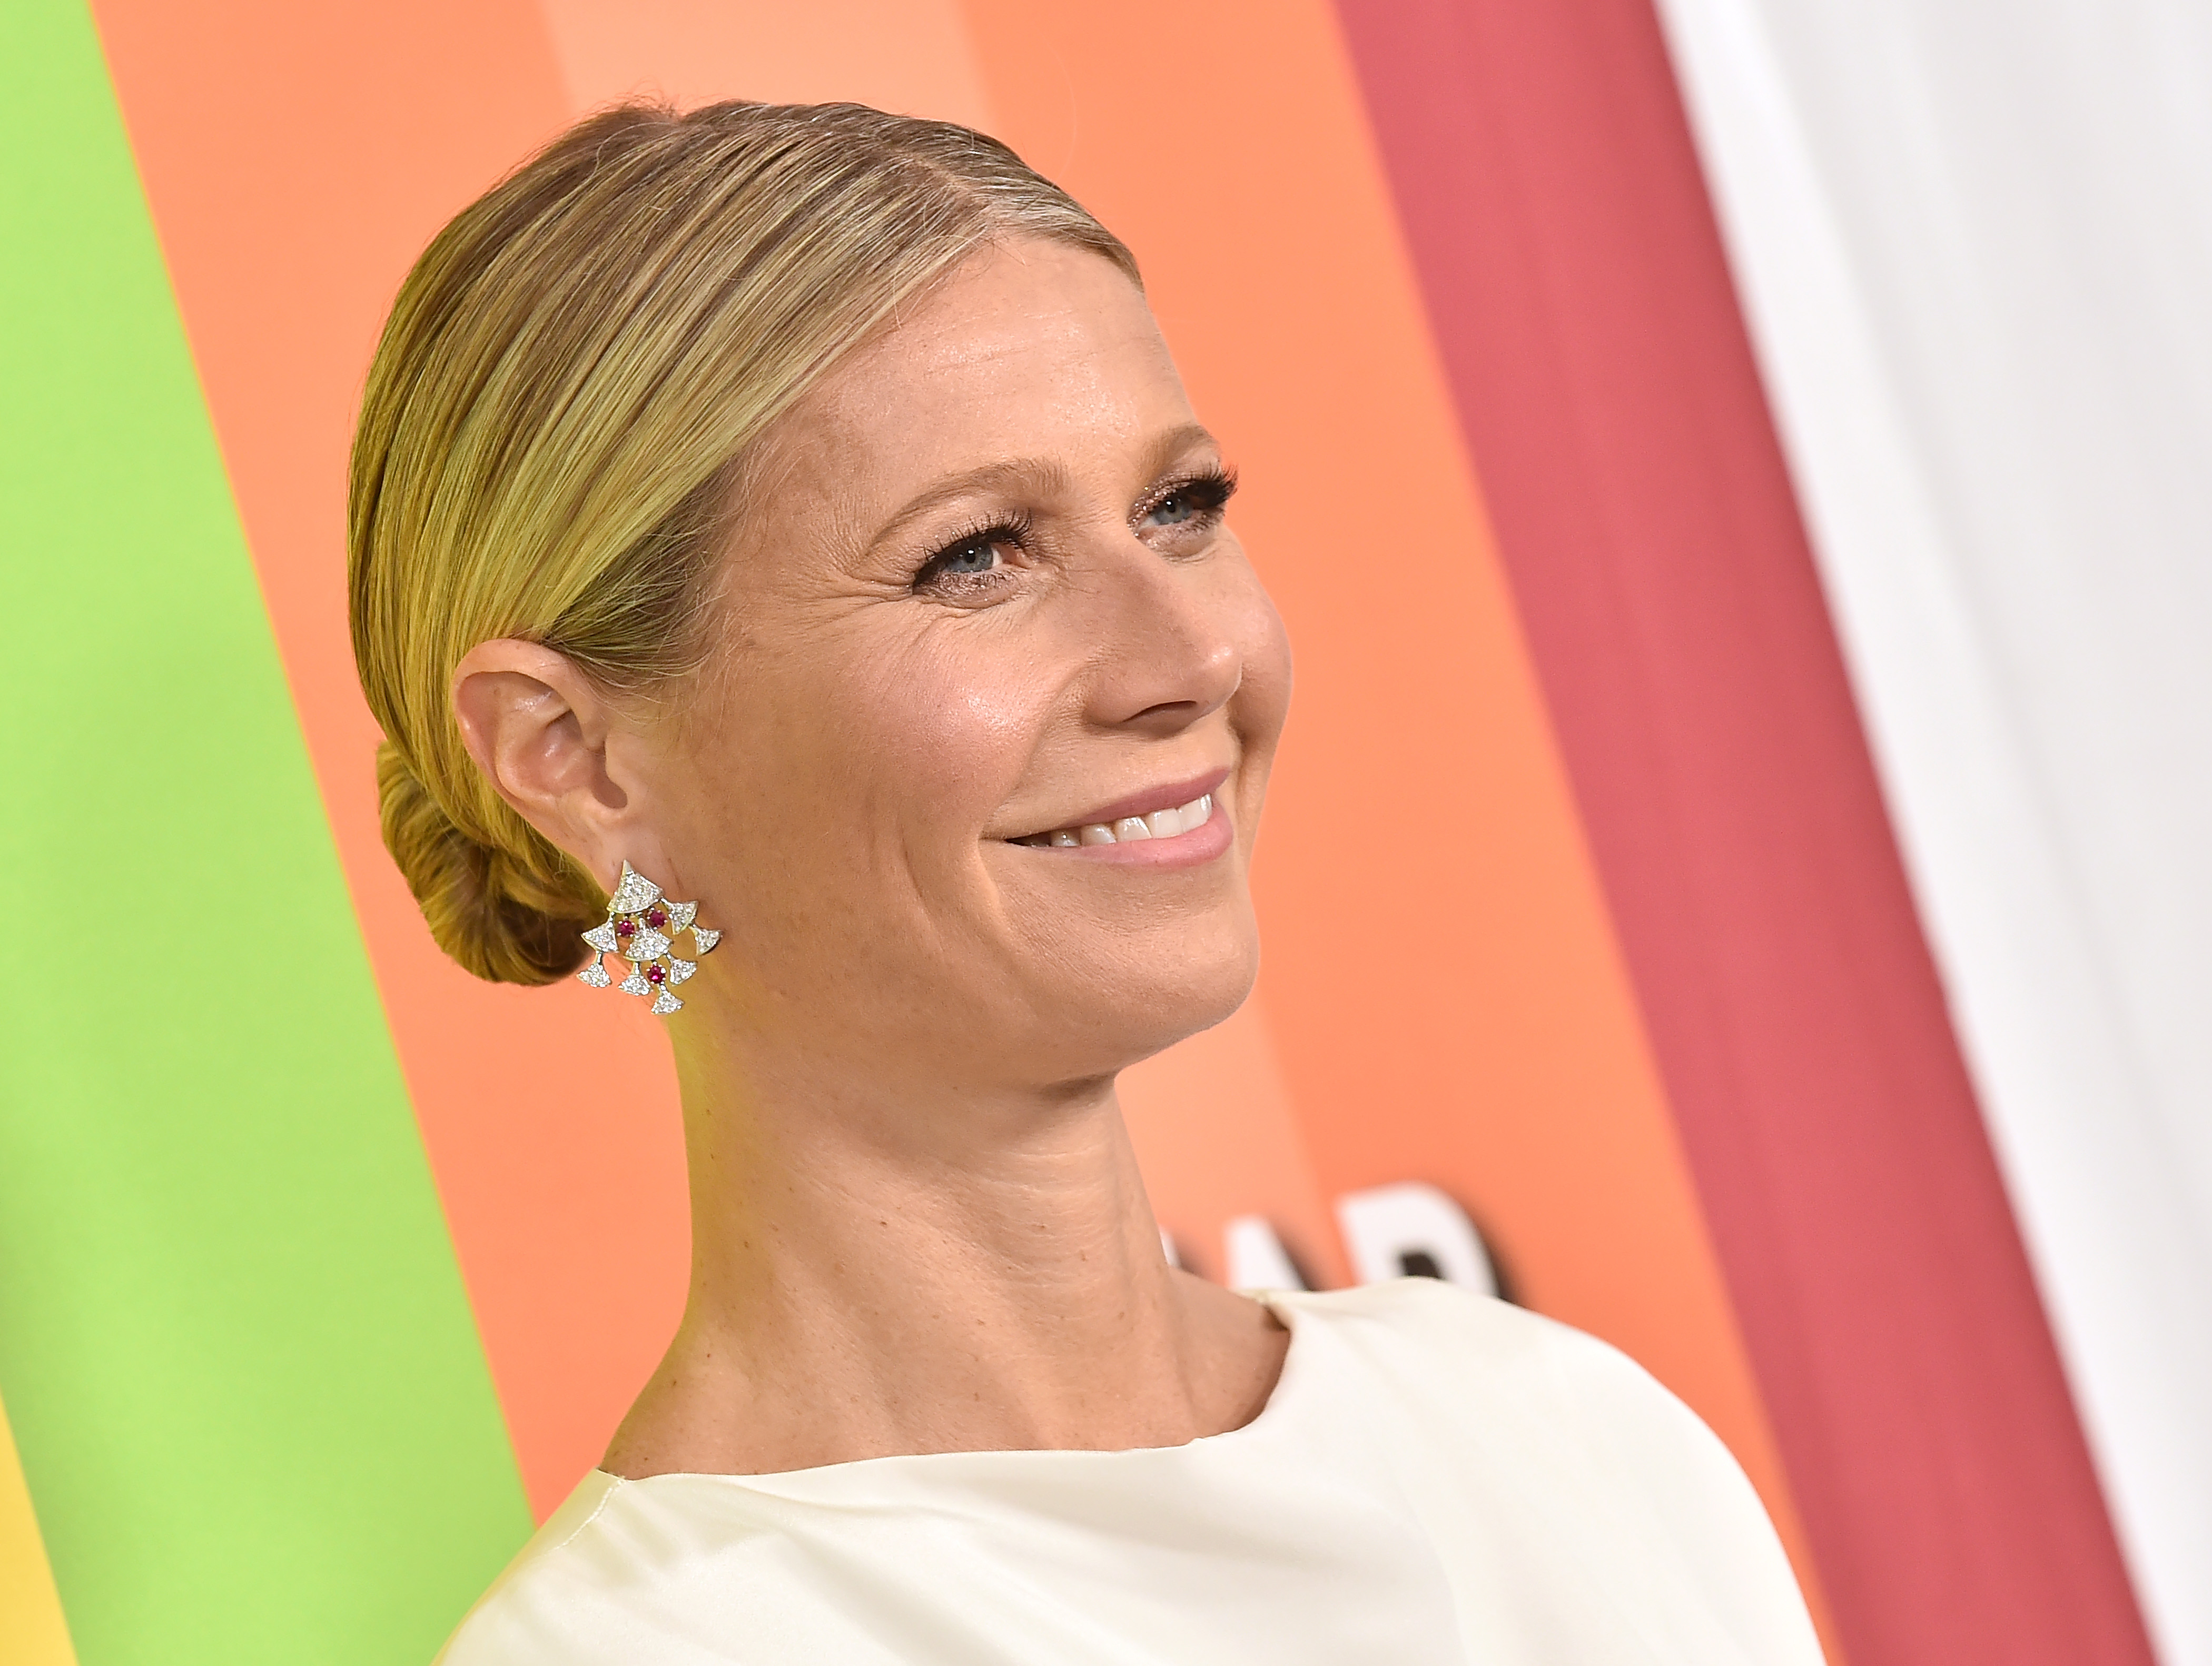 Gwyneth Paltrow smiling in front of a backdrop.